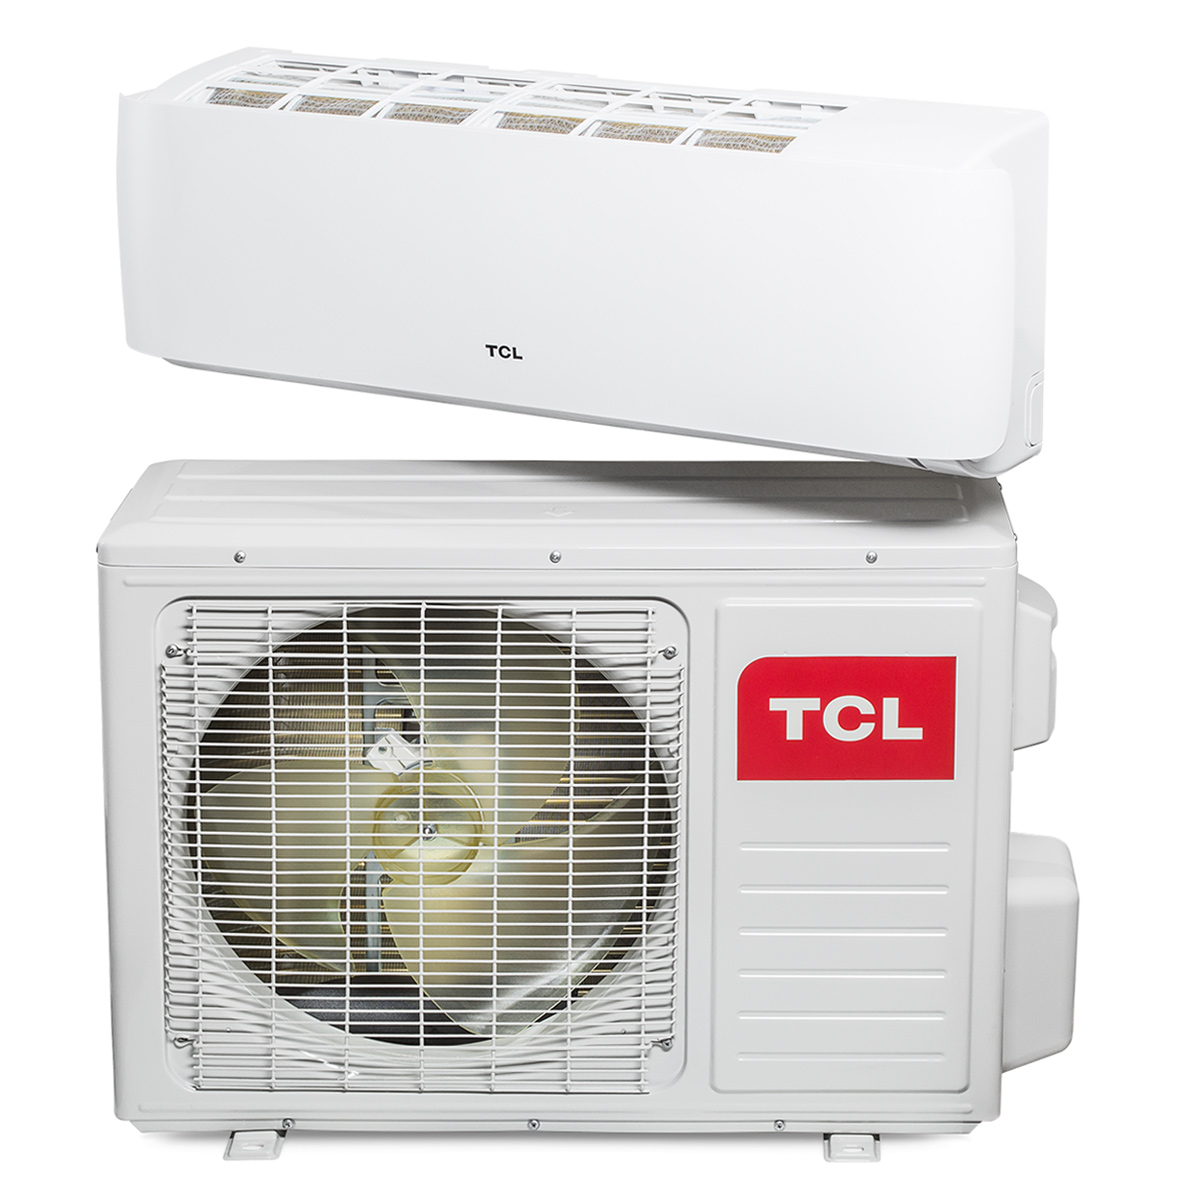 tcl quick connector 12000 btu inverter split klimaanlage. Black Bedroom Furniture Sets. Home Design Ideas